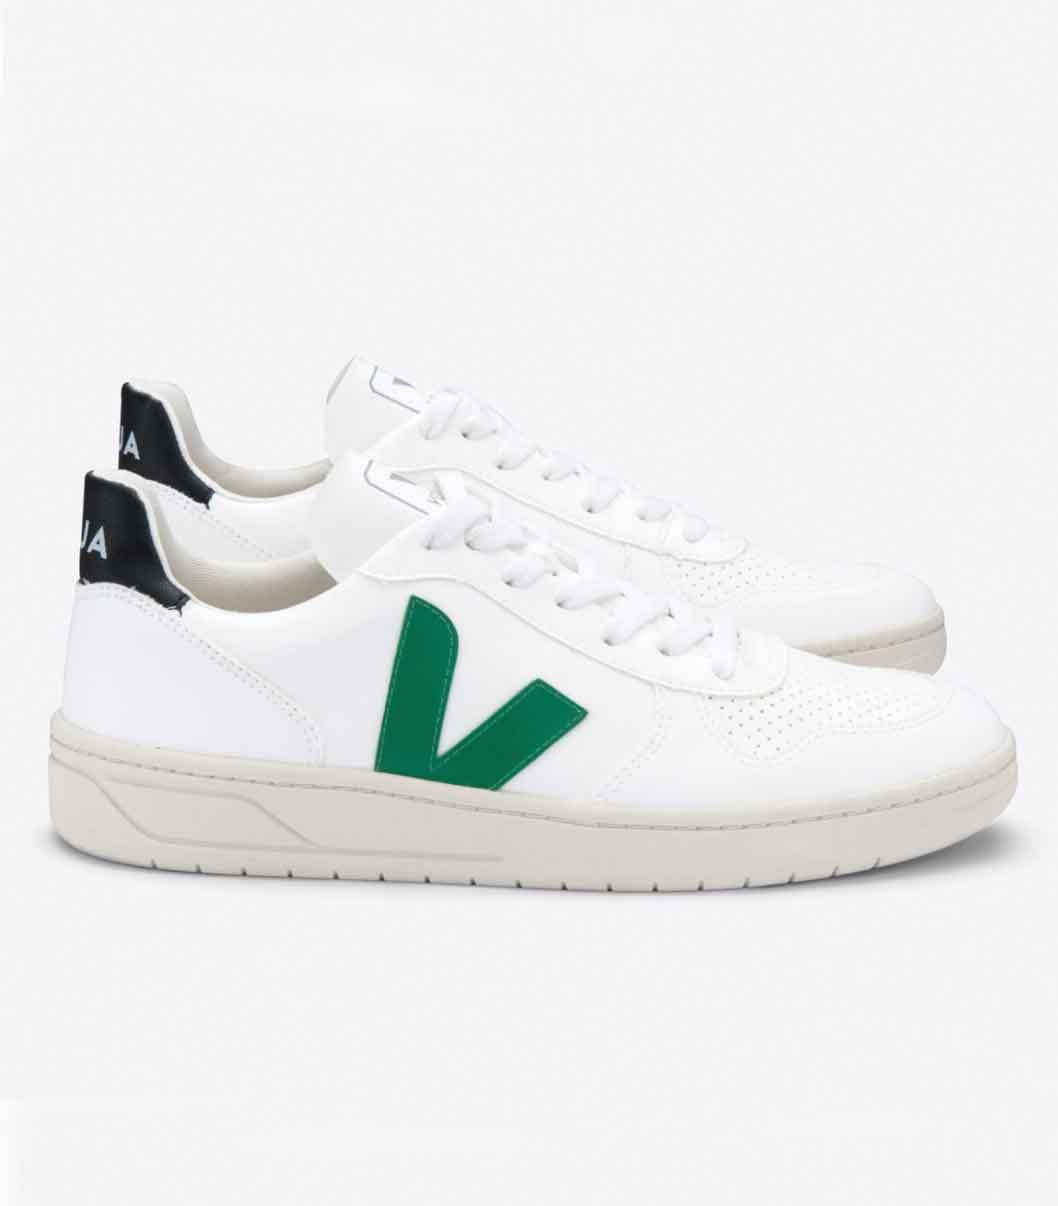 VEJA vegan canvas sneakers trainers | sustainable shoes lookbook